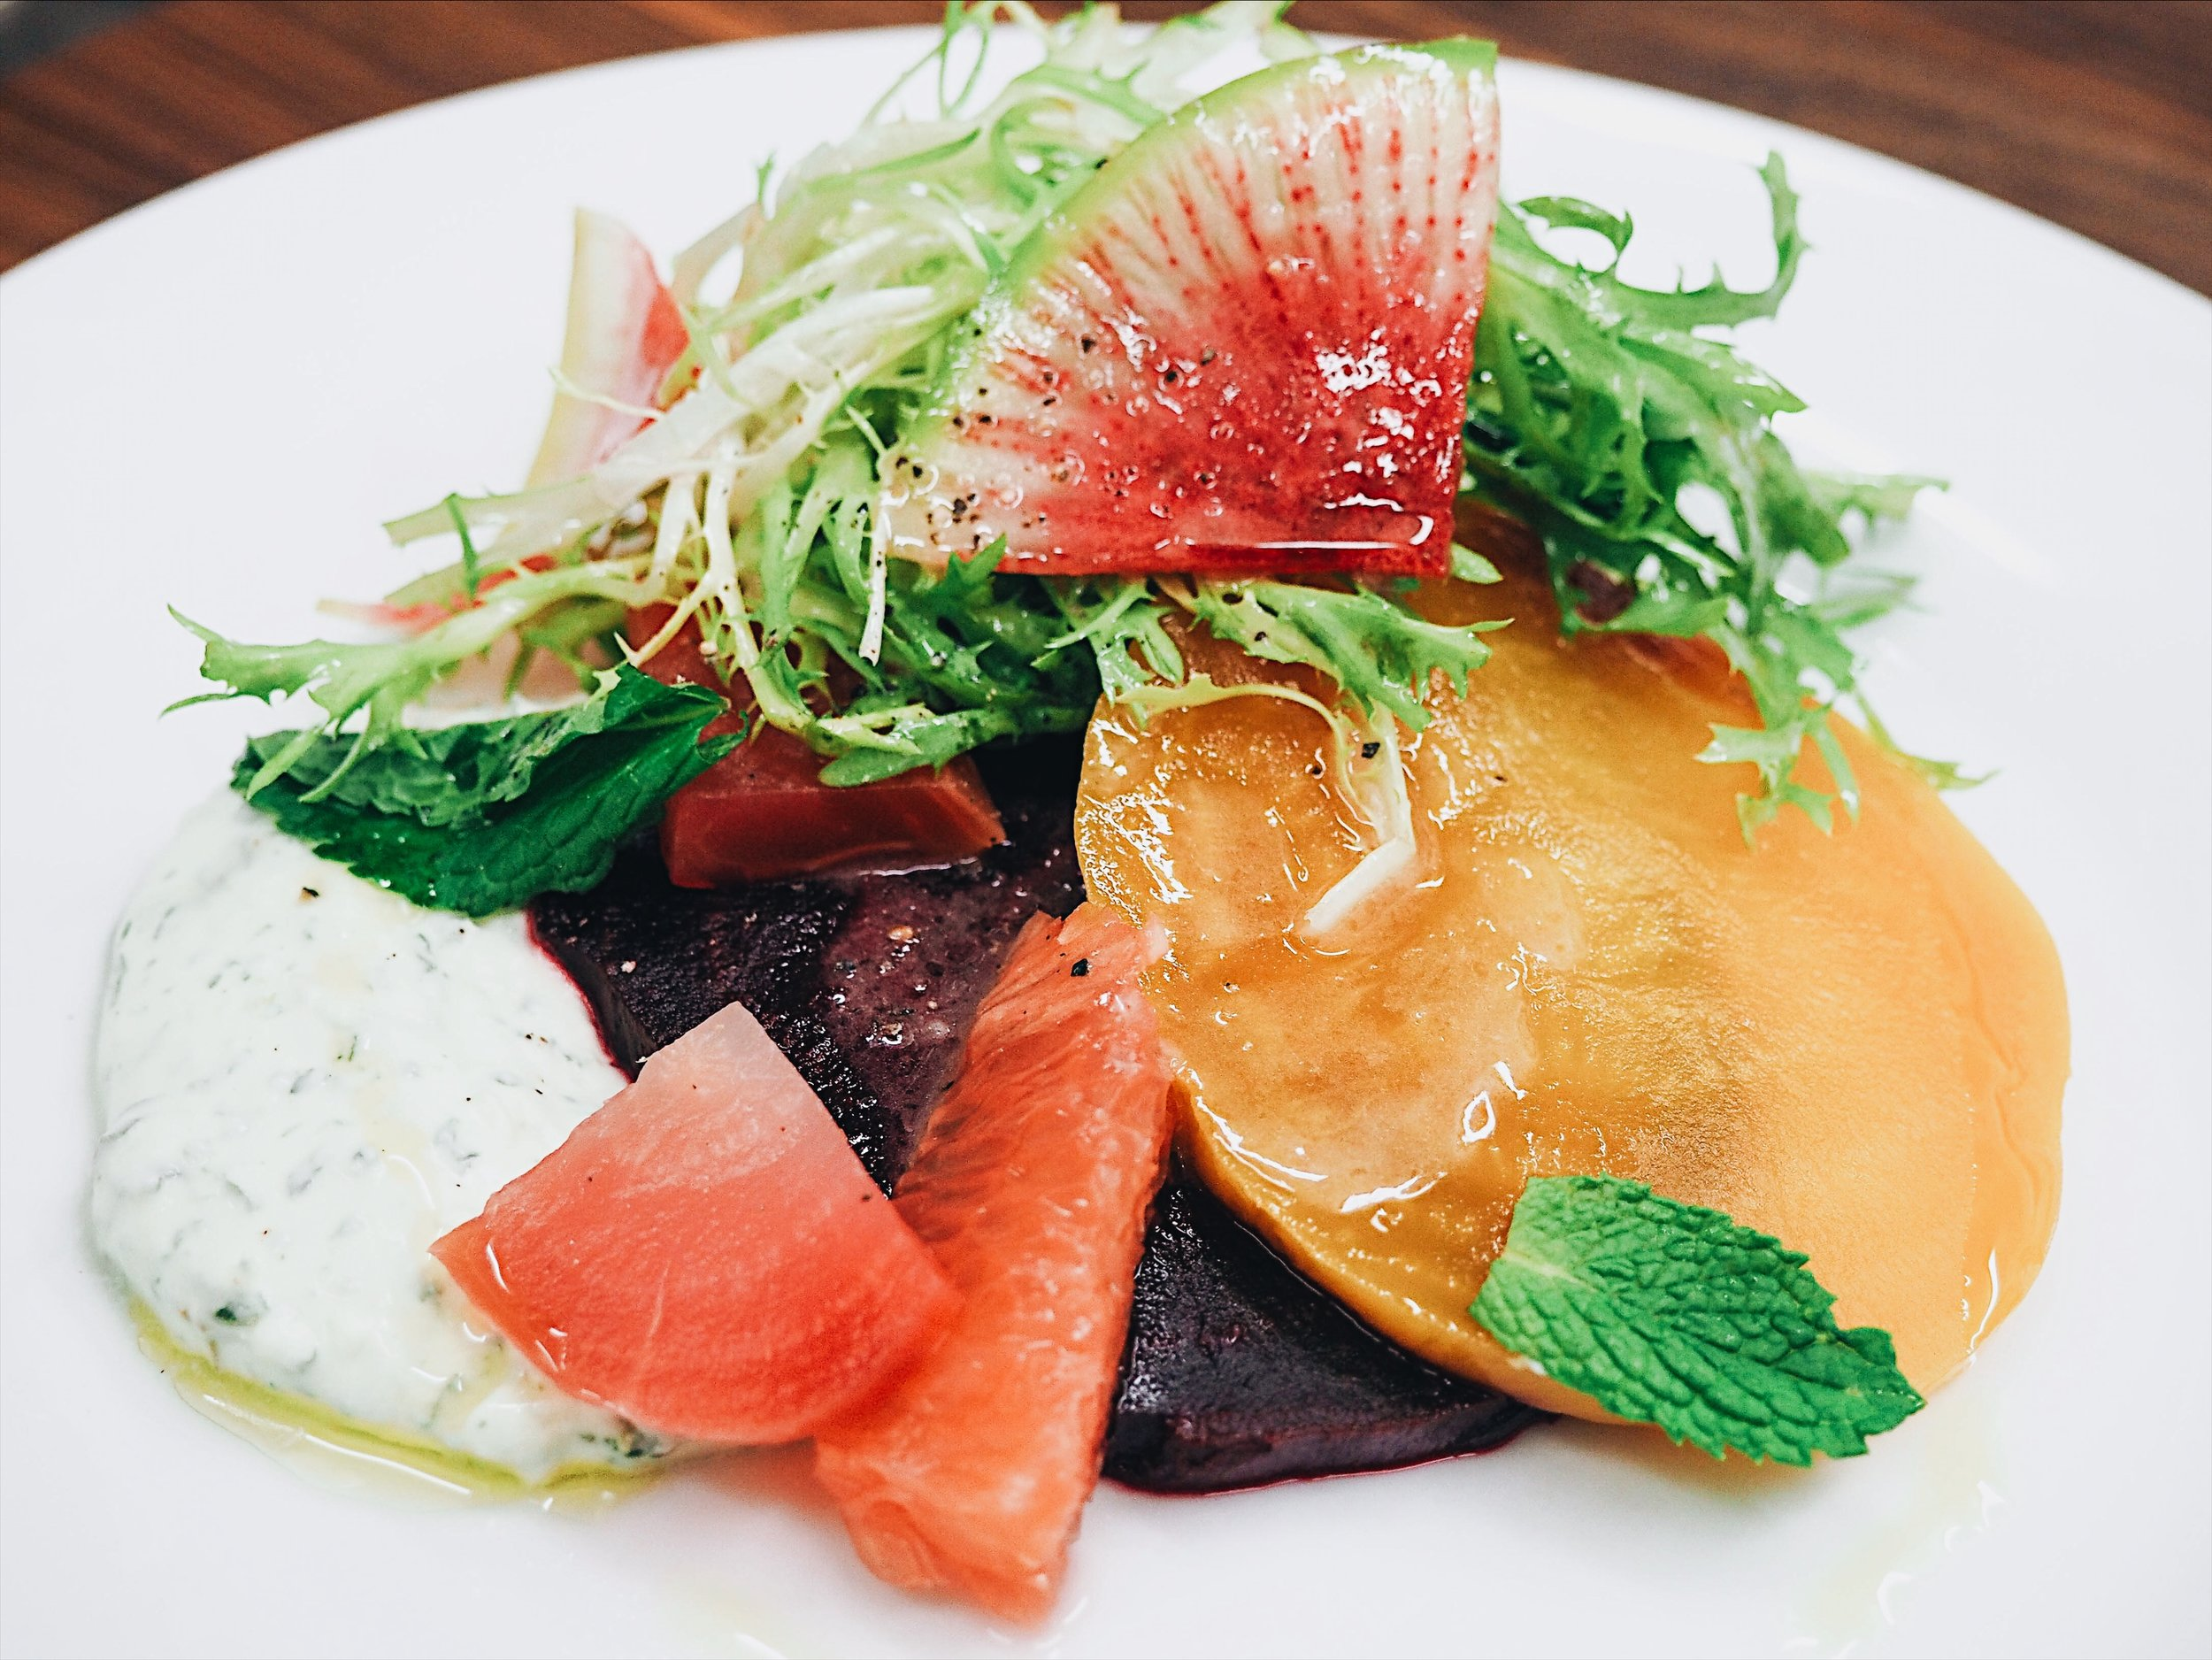 Roasted Beets Salad with Mint Creme Fraiche, Grapefruit, Frisee and Red Wine Vinaigrette